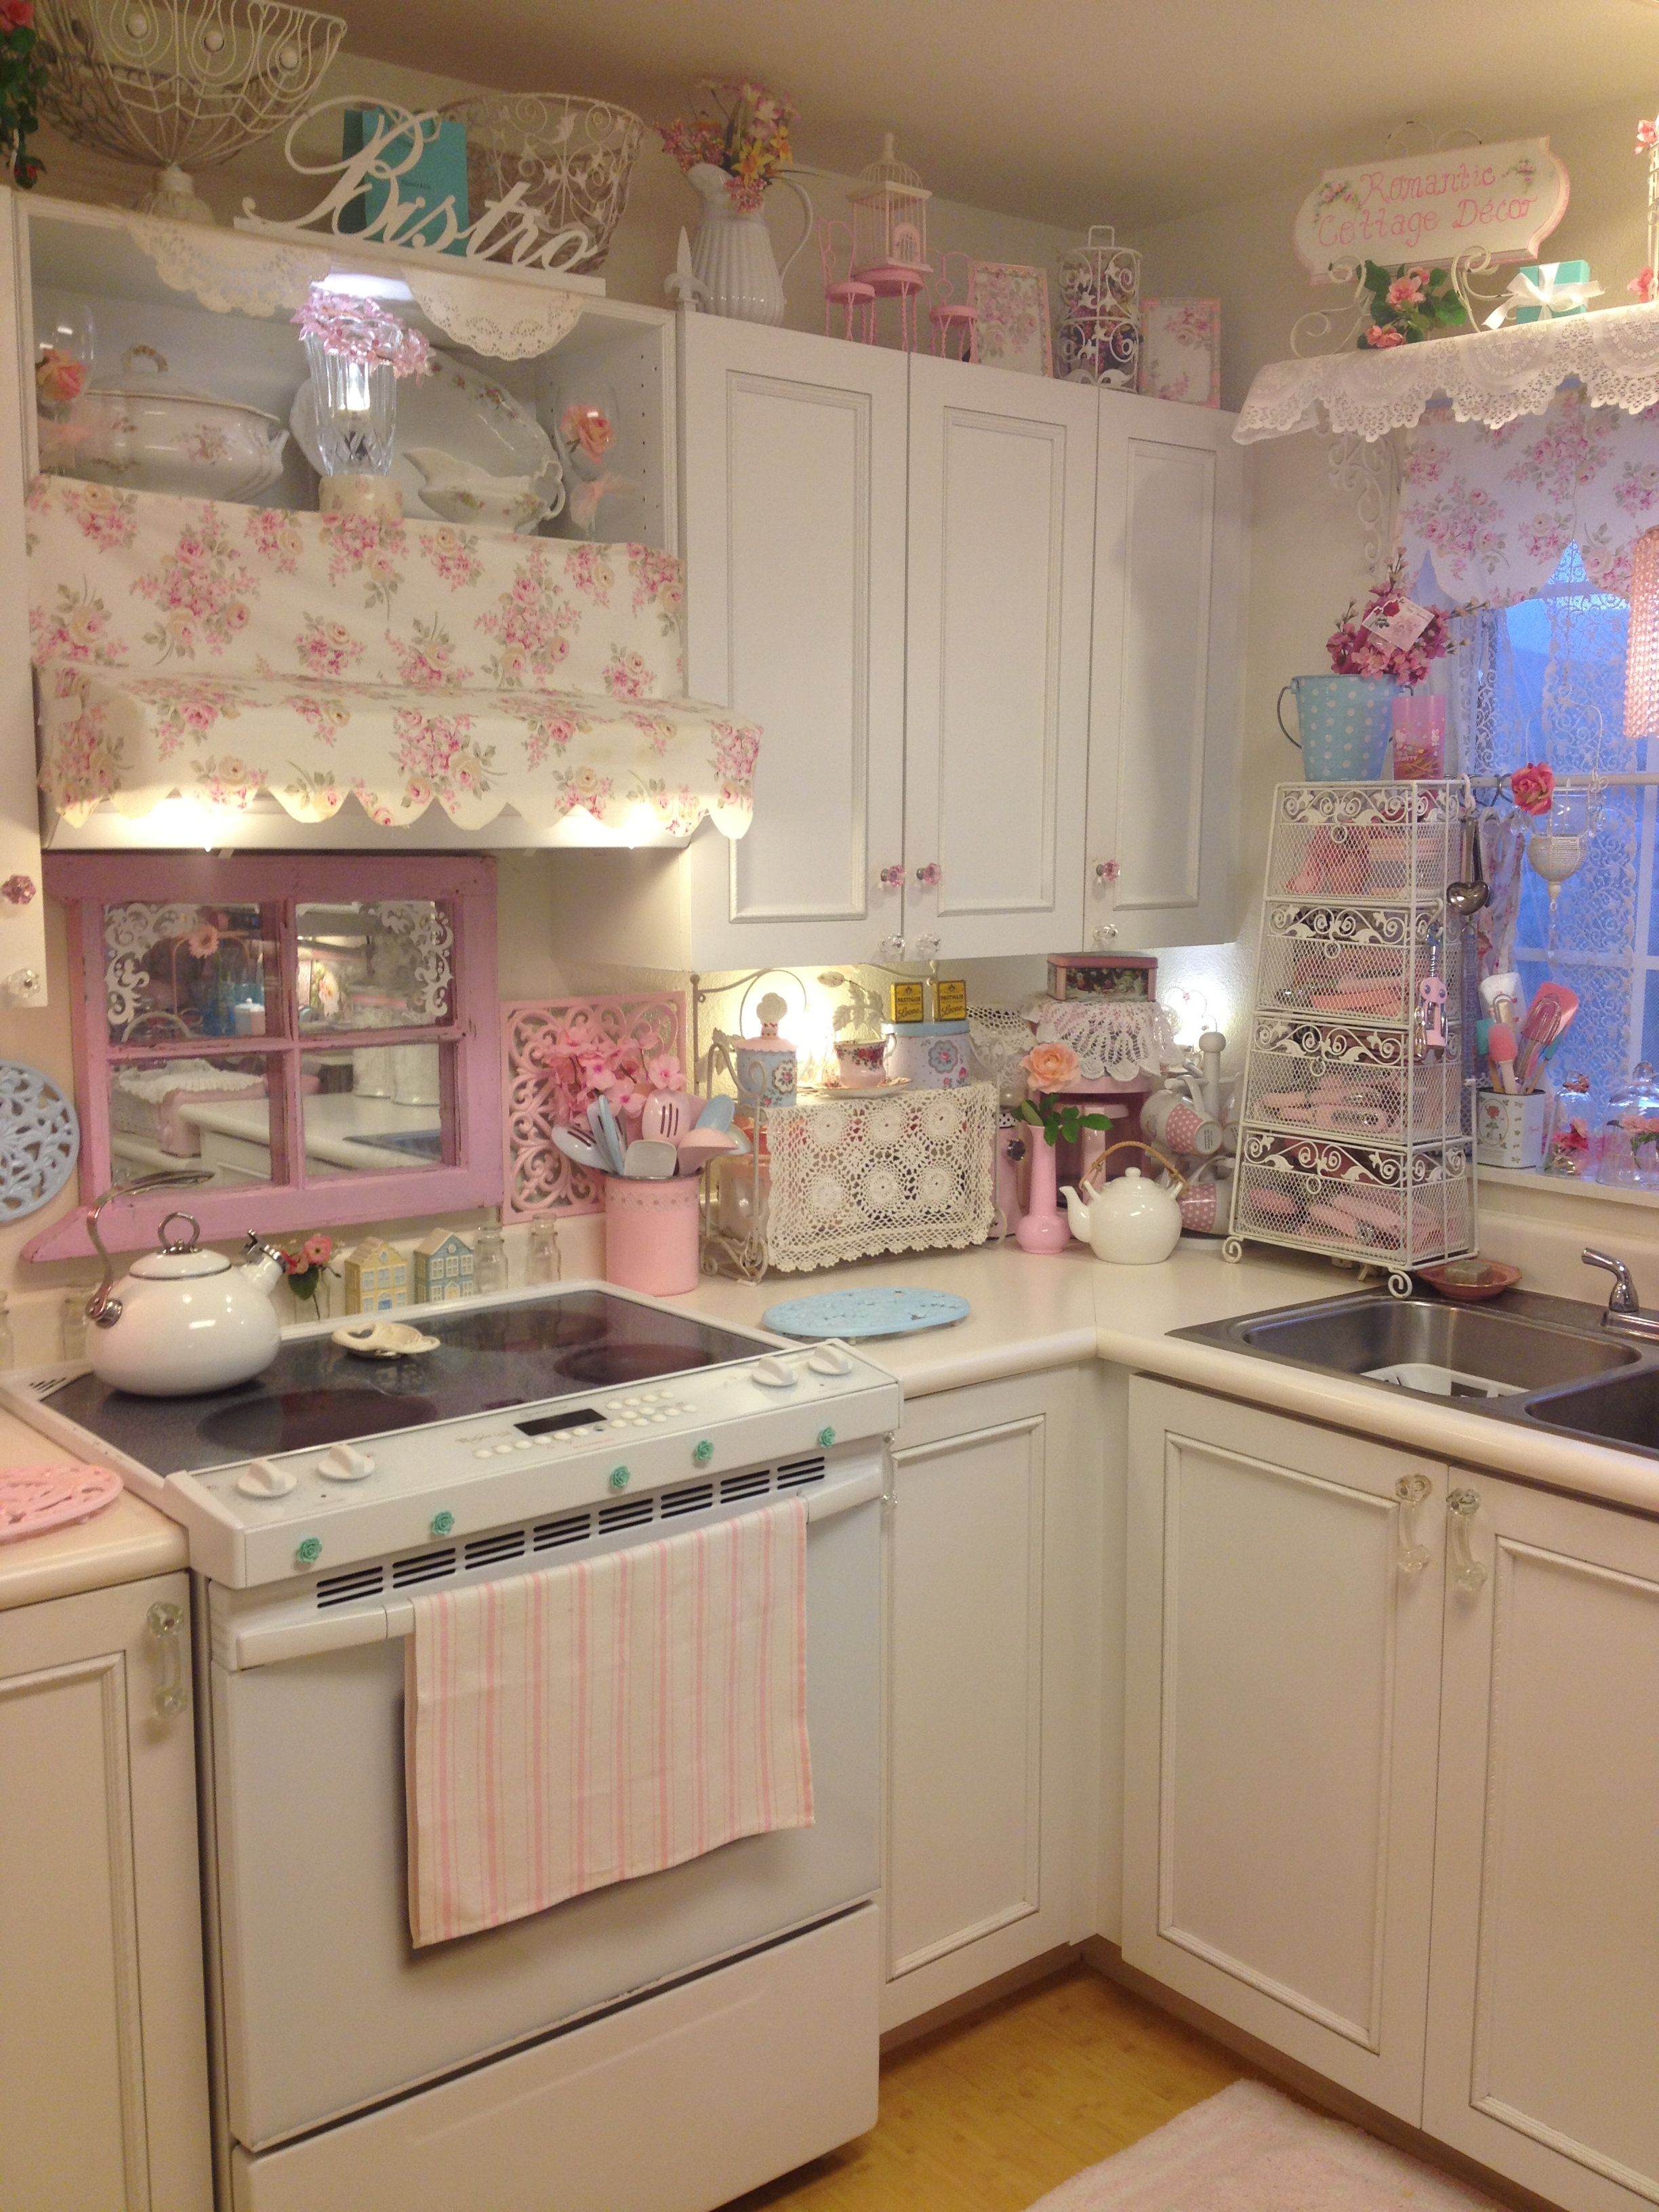 Always looking for more pink kitchen aid